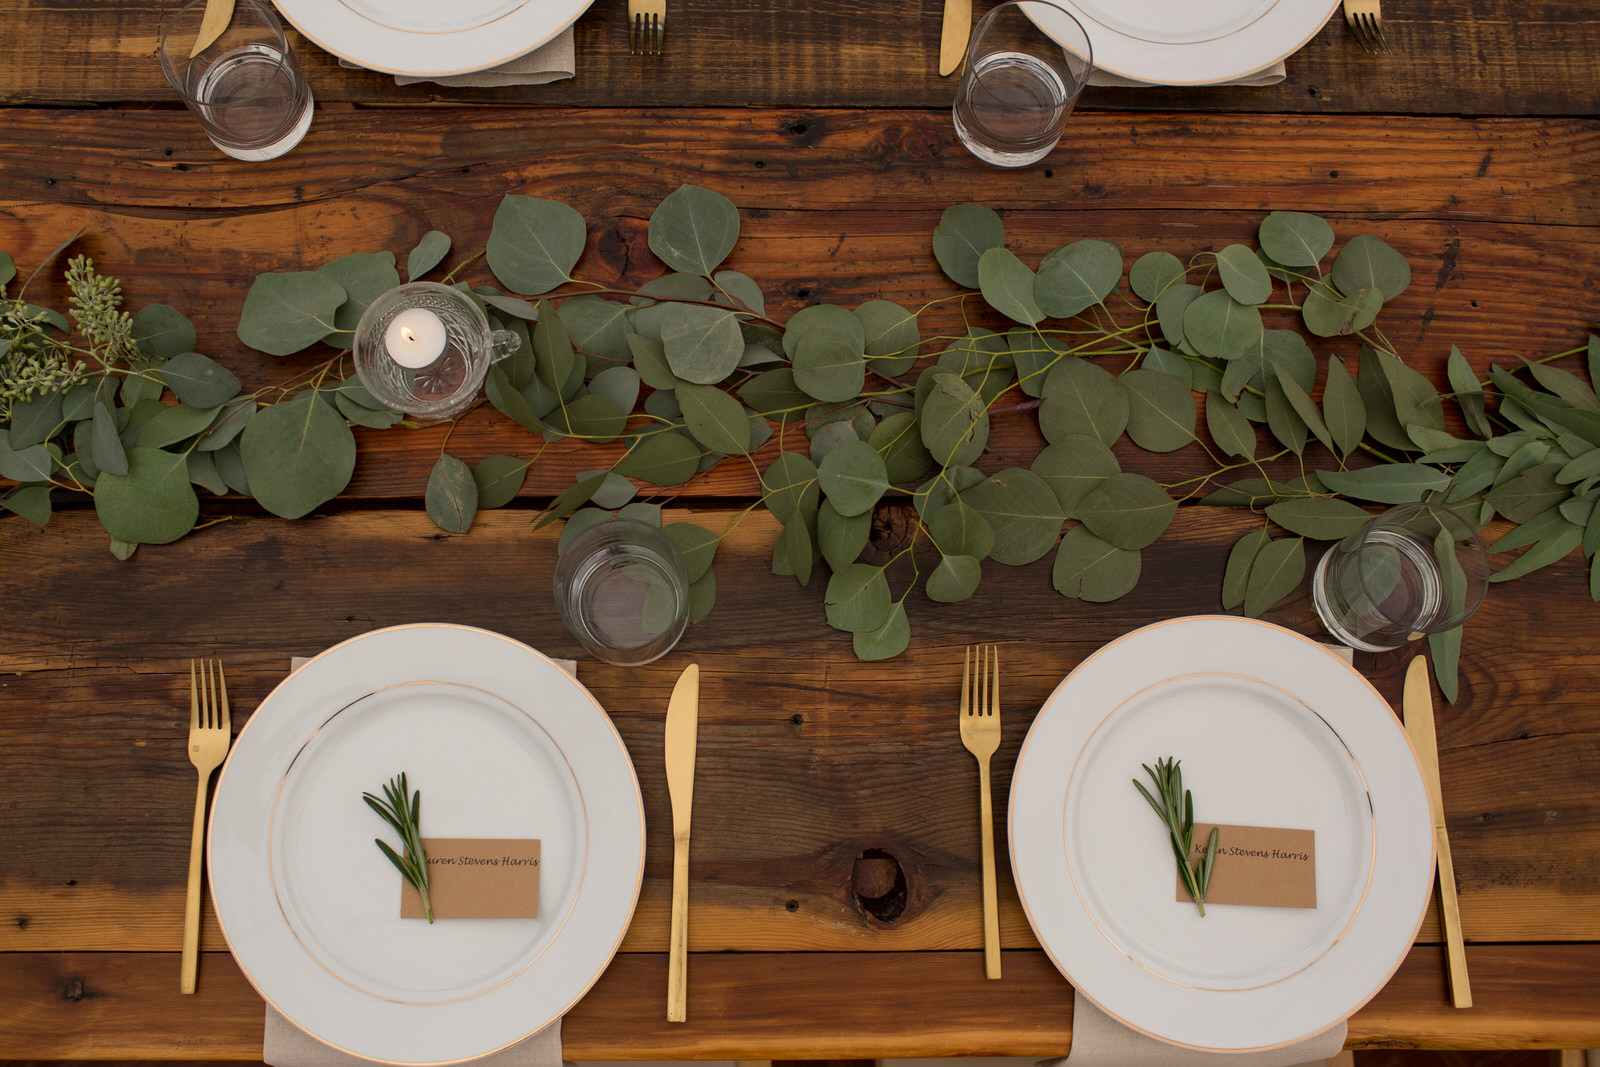 table scape from above, of a wedding table with greenery, gold rimmed plates and gold silverware